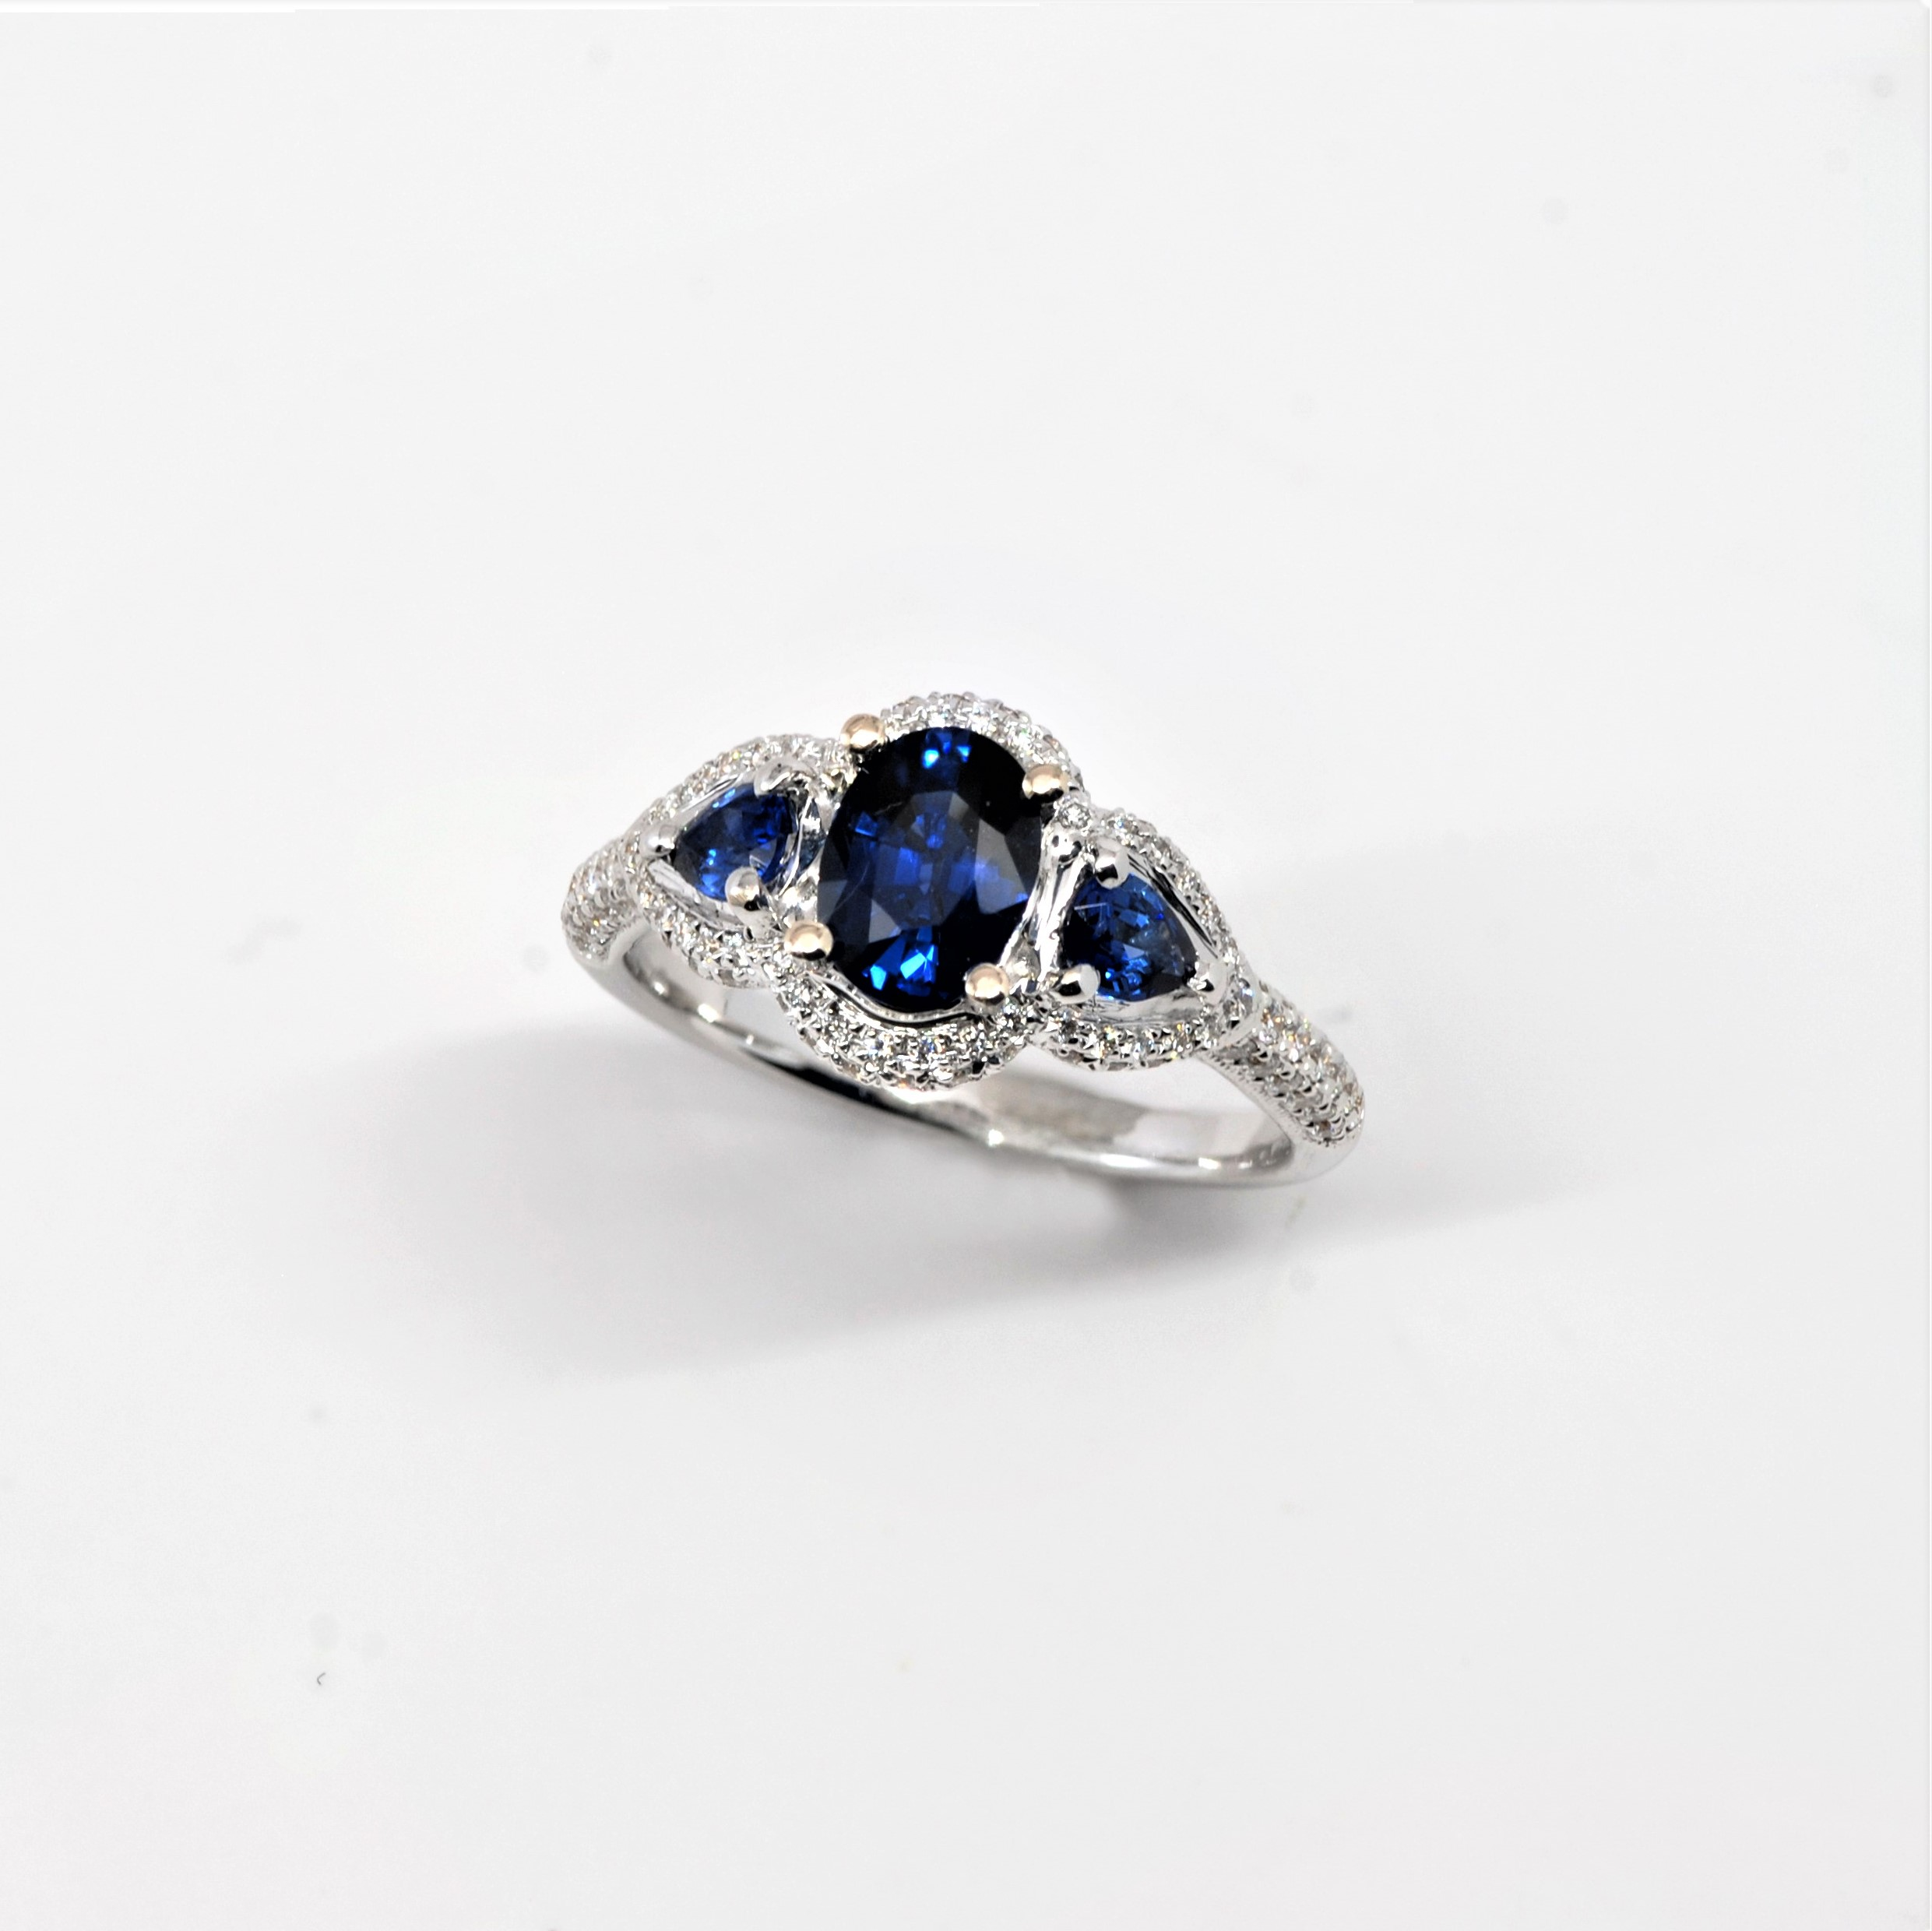 e896d2bf3fbcc 3-Stone Diamond Halo Sapphire Ring 14k White Gold